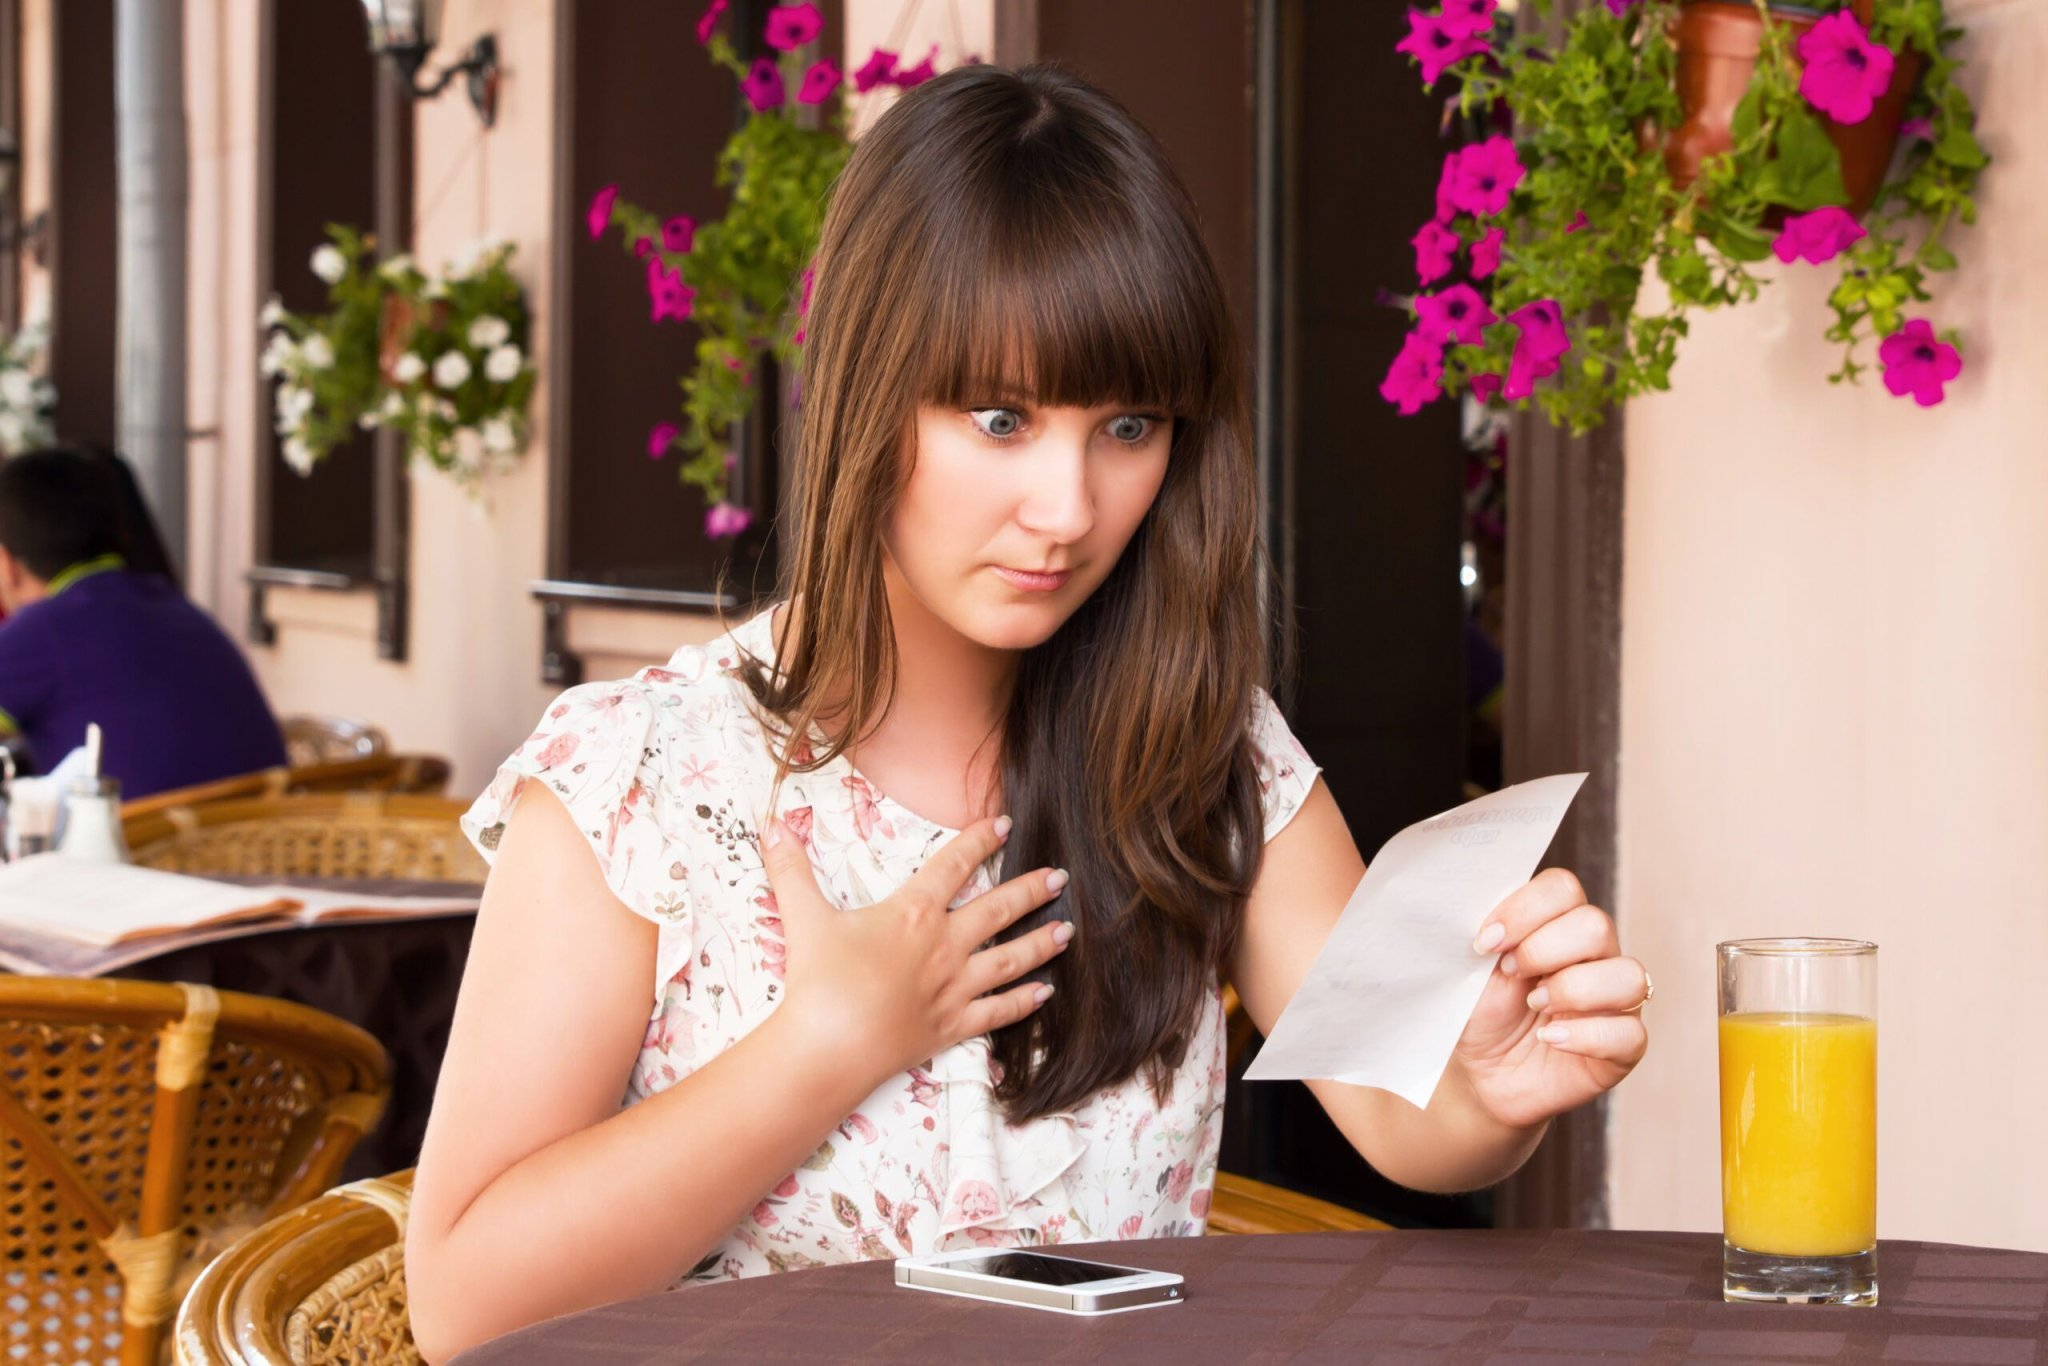 Don't Fall For These Expensive Tricks When Dining Out